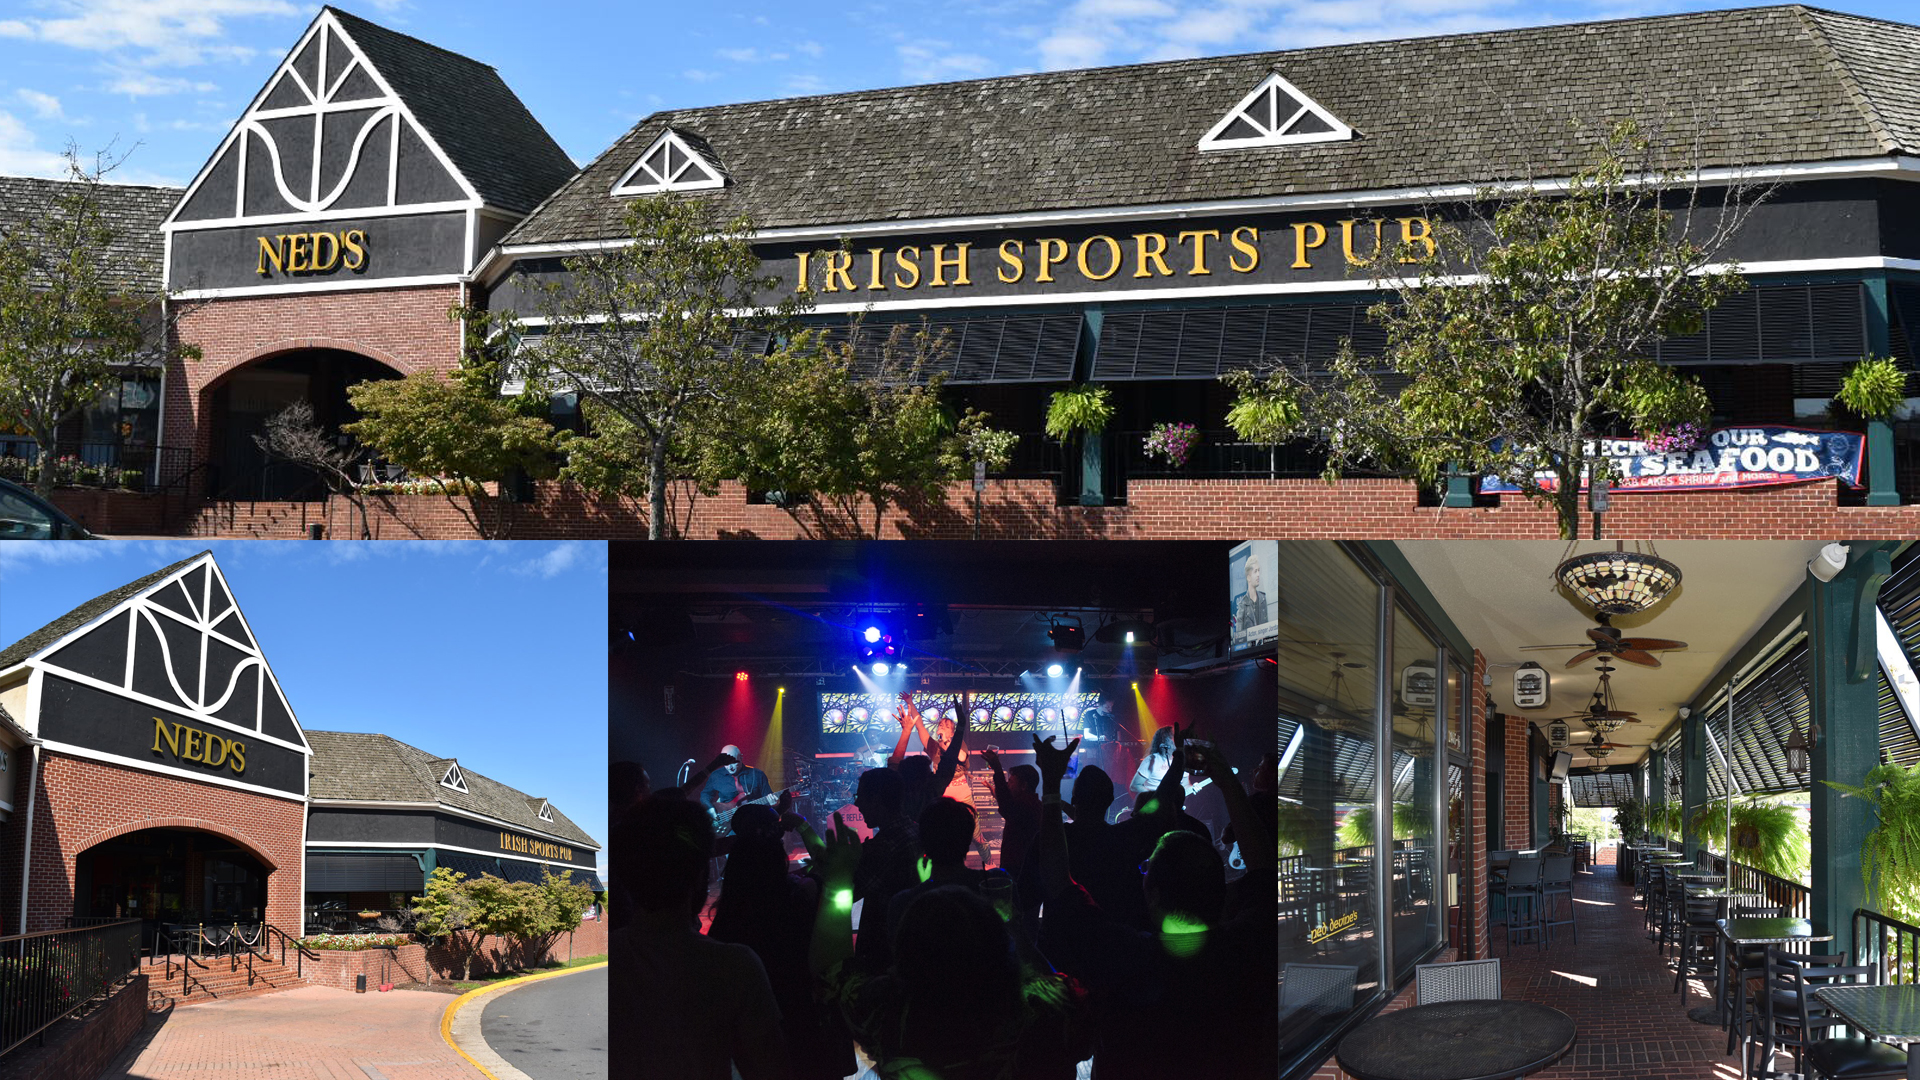 Ned's Irish Sports Pub